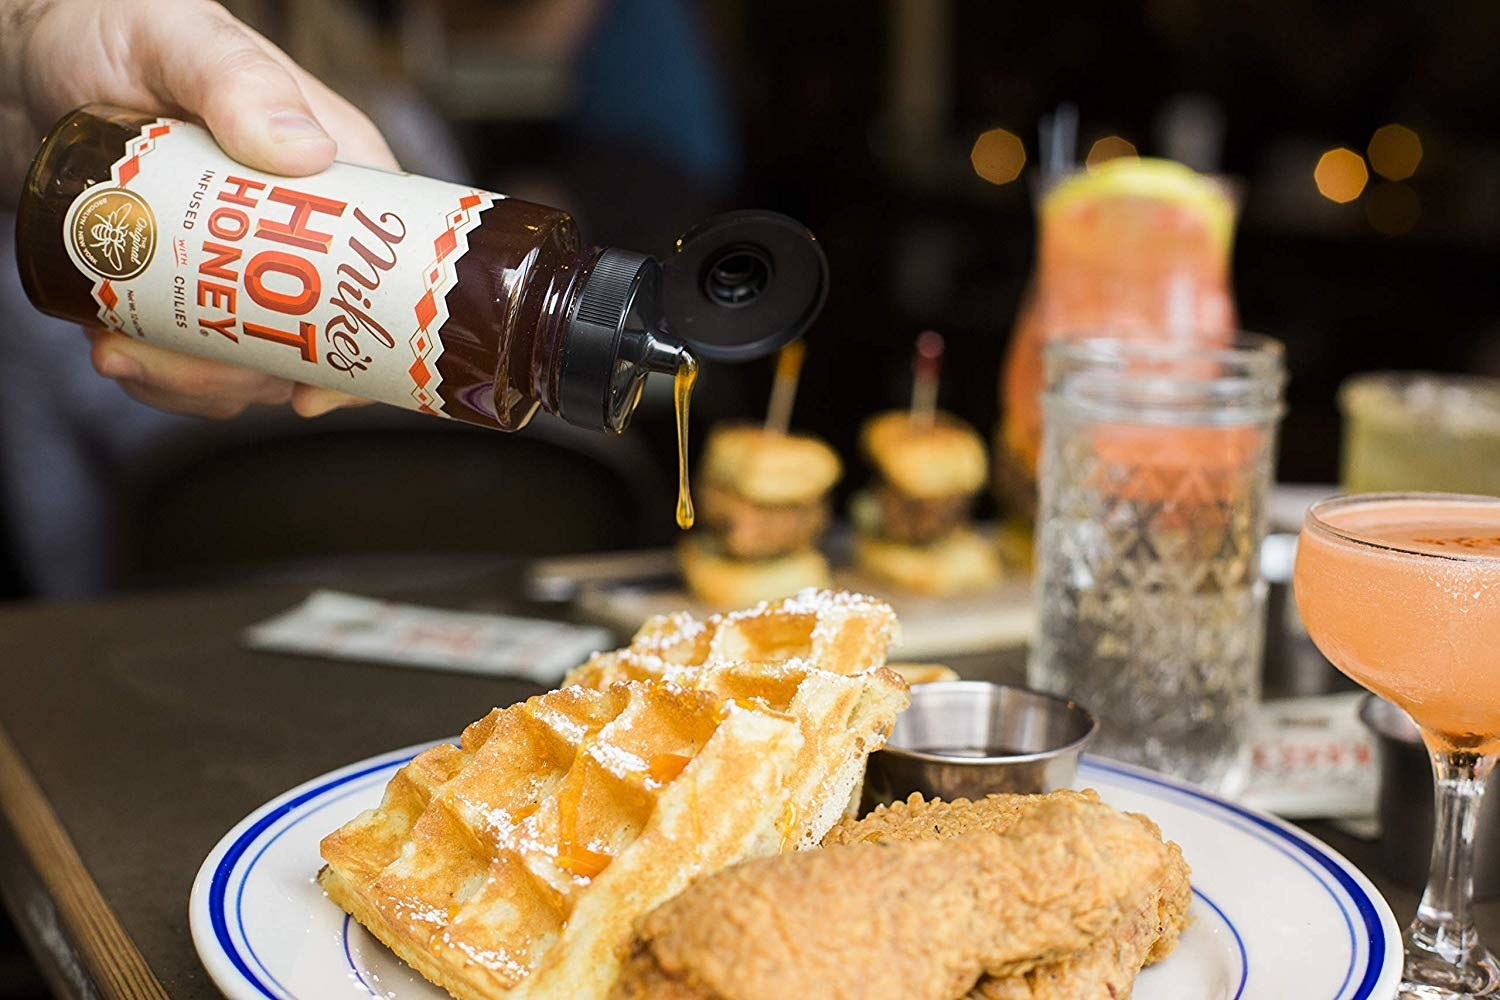 Mike's Hot Honey sauce used on a dish of chicken and waffles